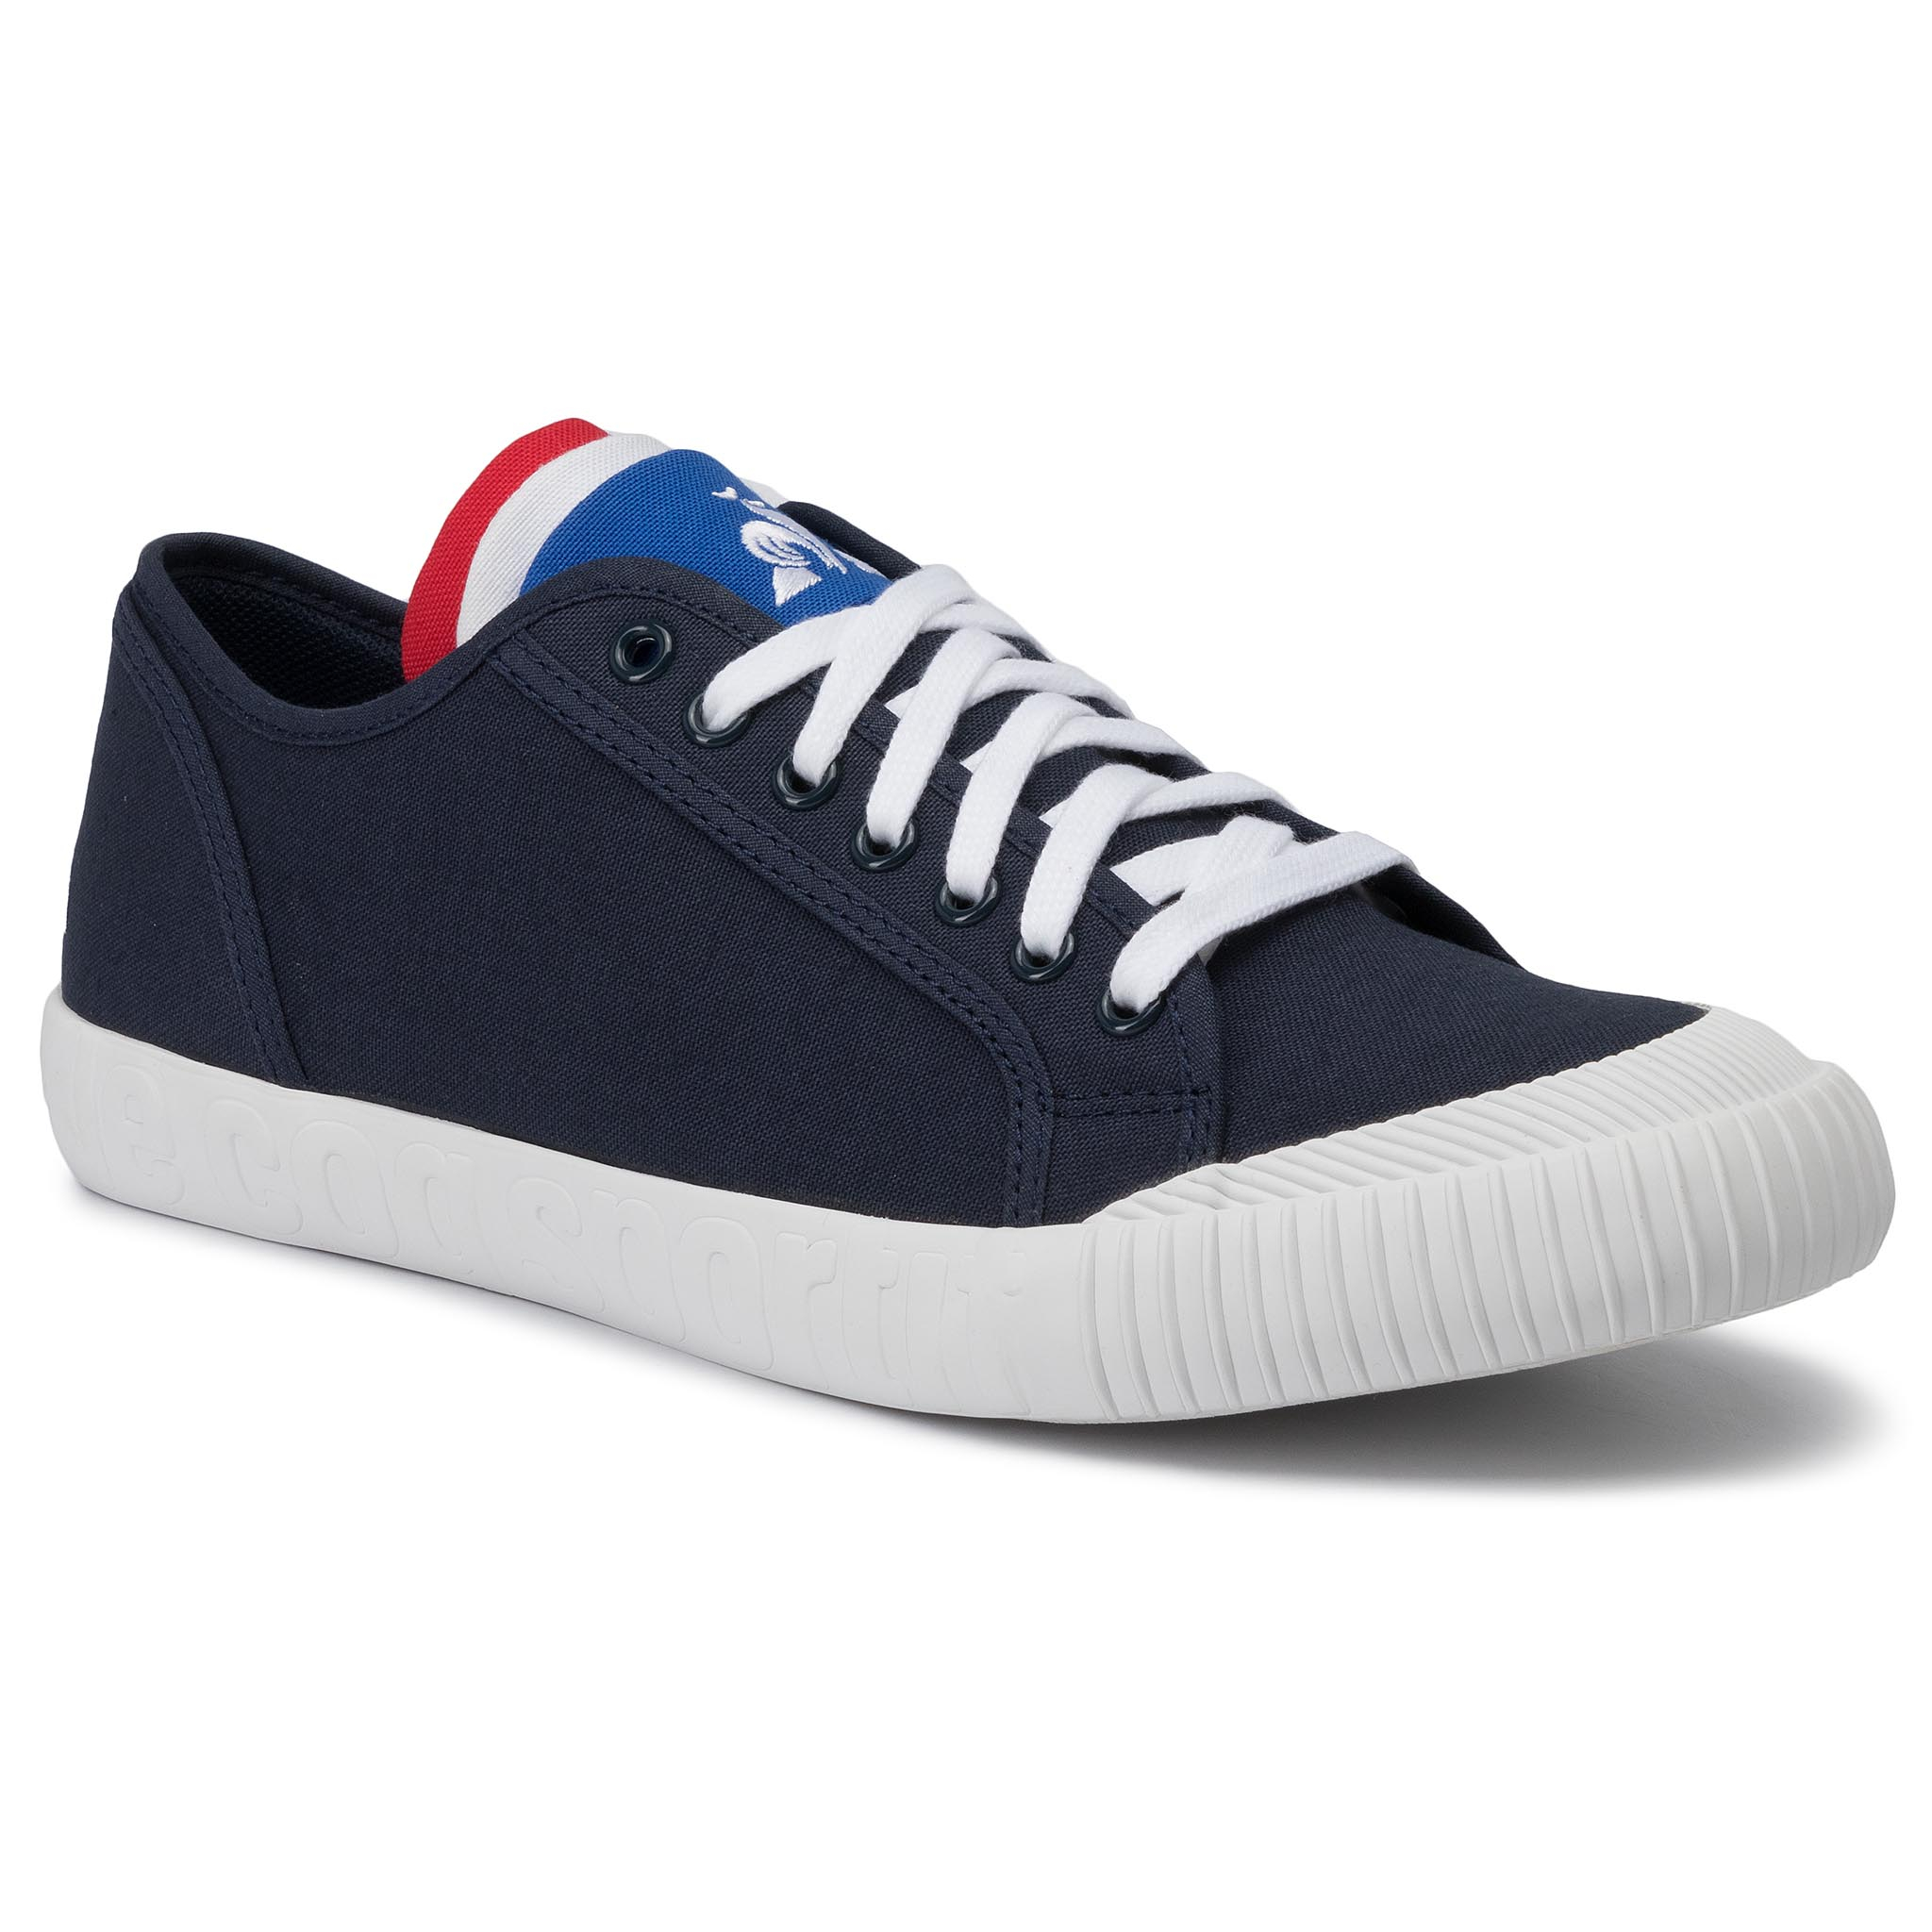 Teniși LE COQ SPORTIF - Nationale Sport 1910019 Dress Blue